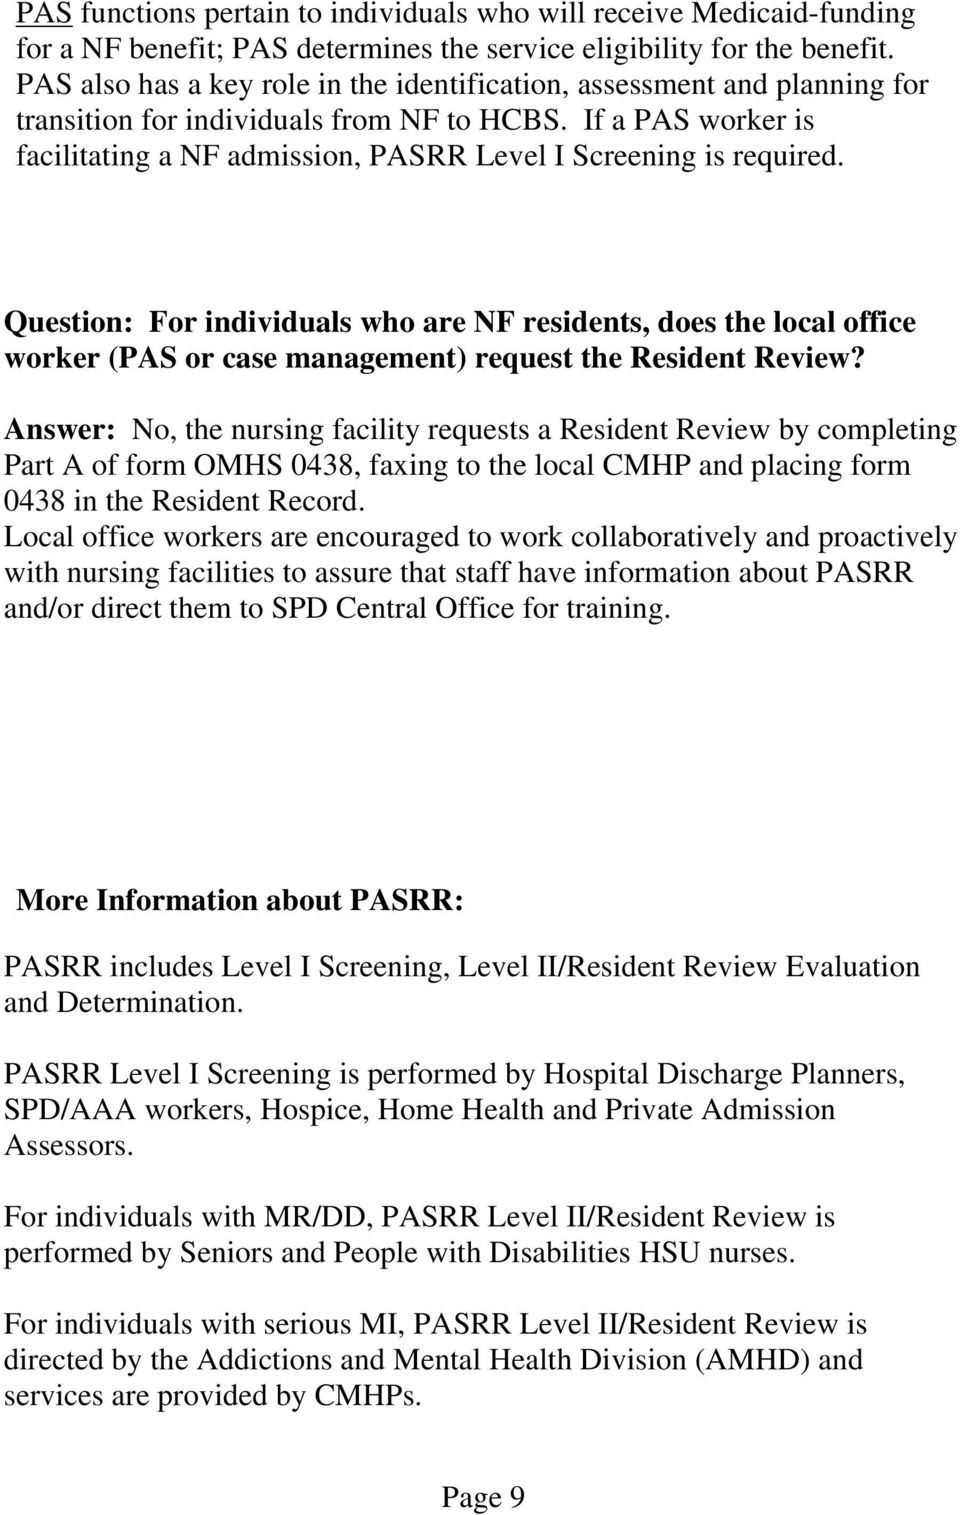 If a PAS worker is facilitating a NF admission, PASRR Level I Screening is required.